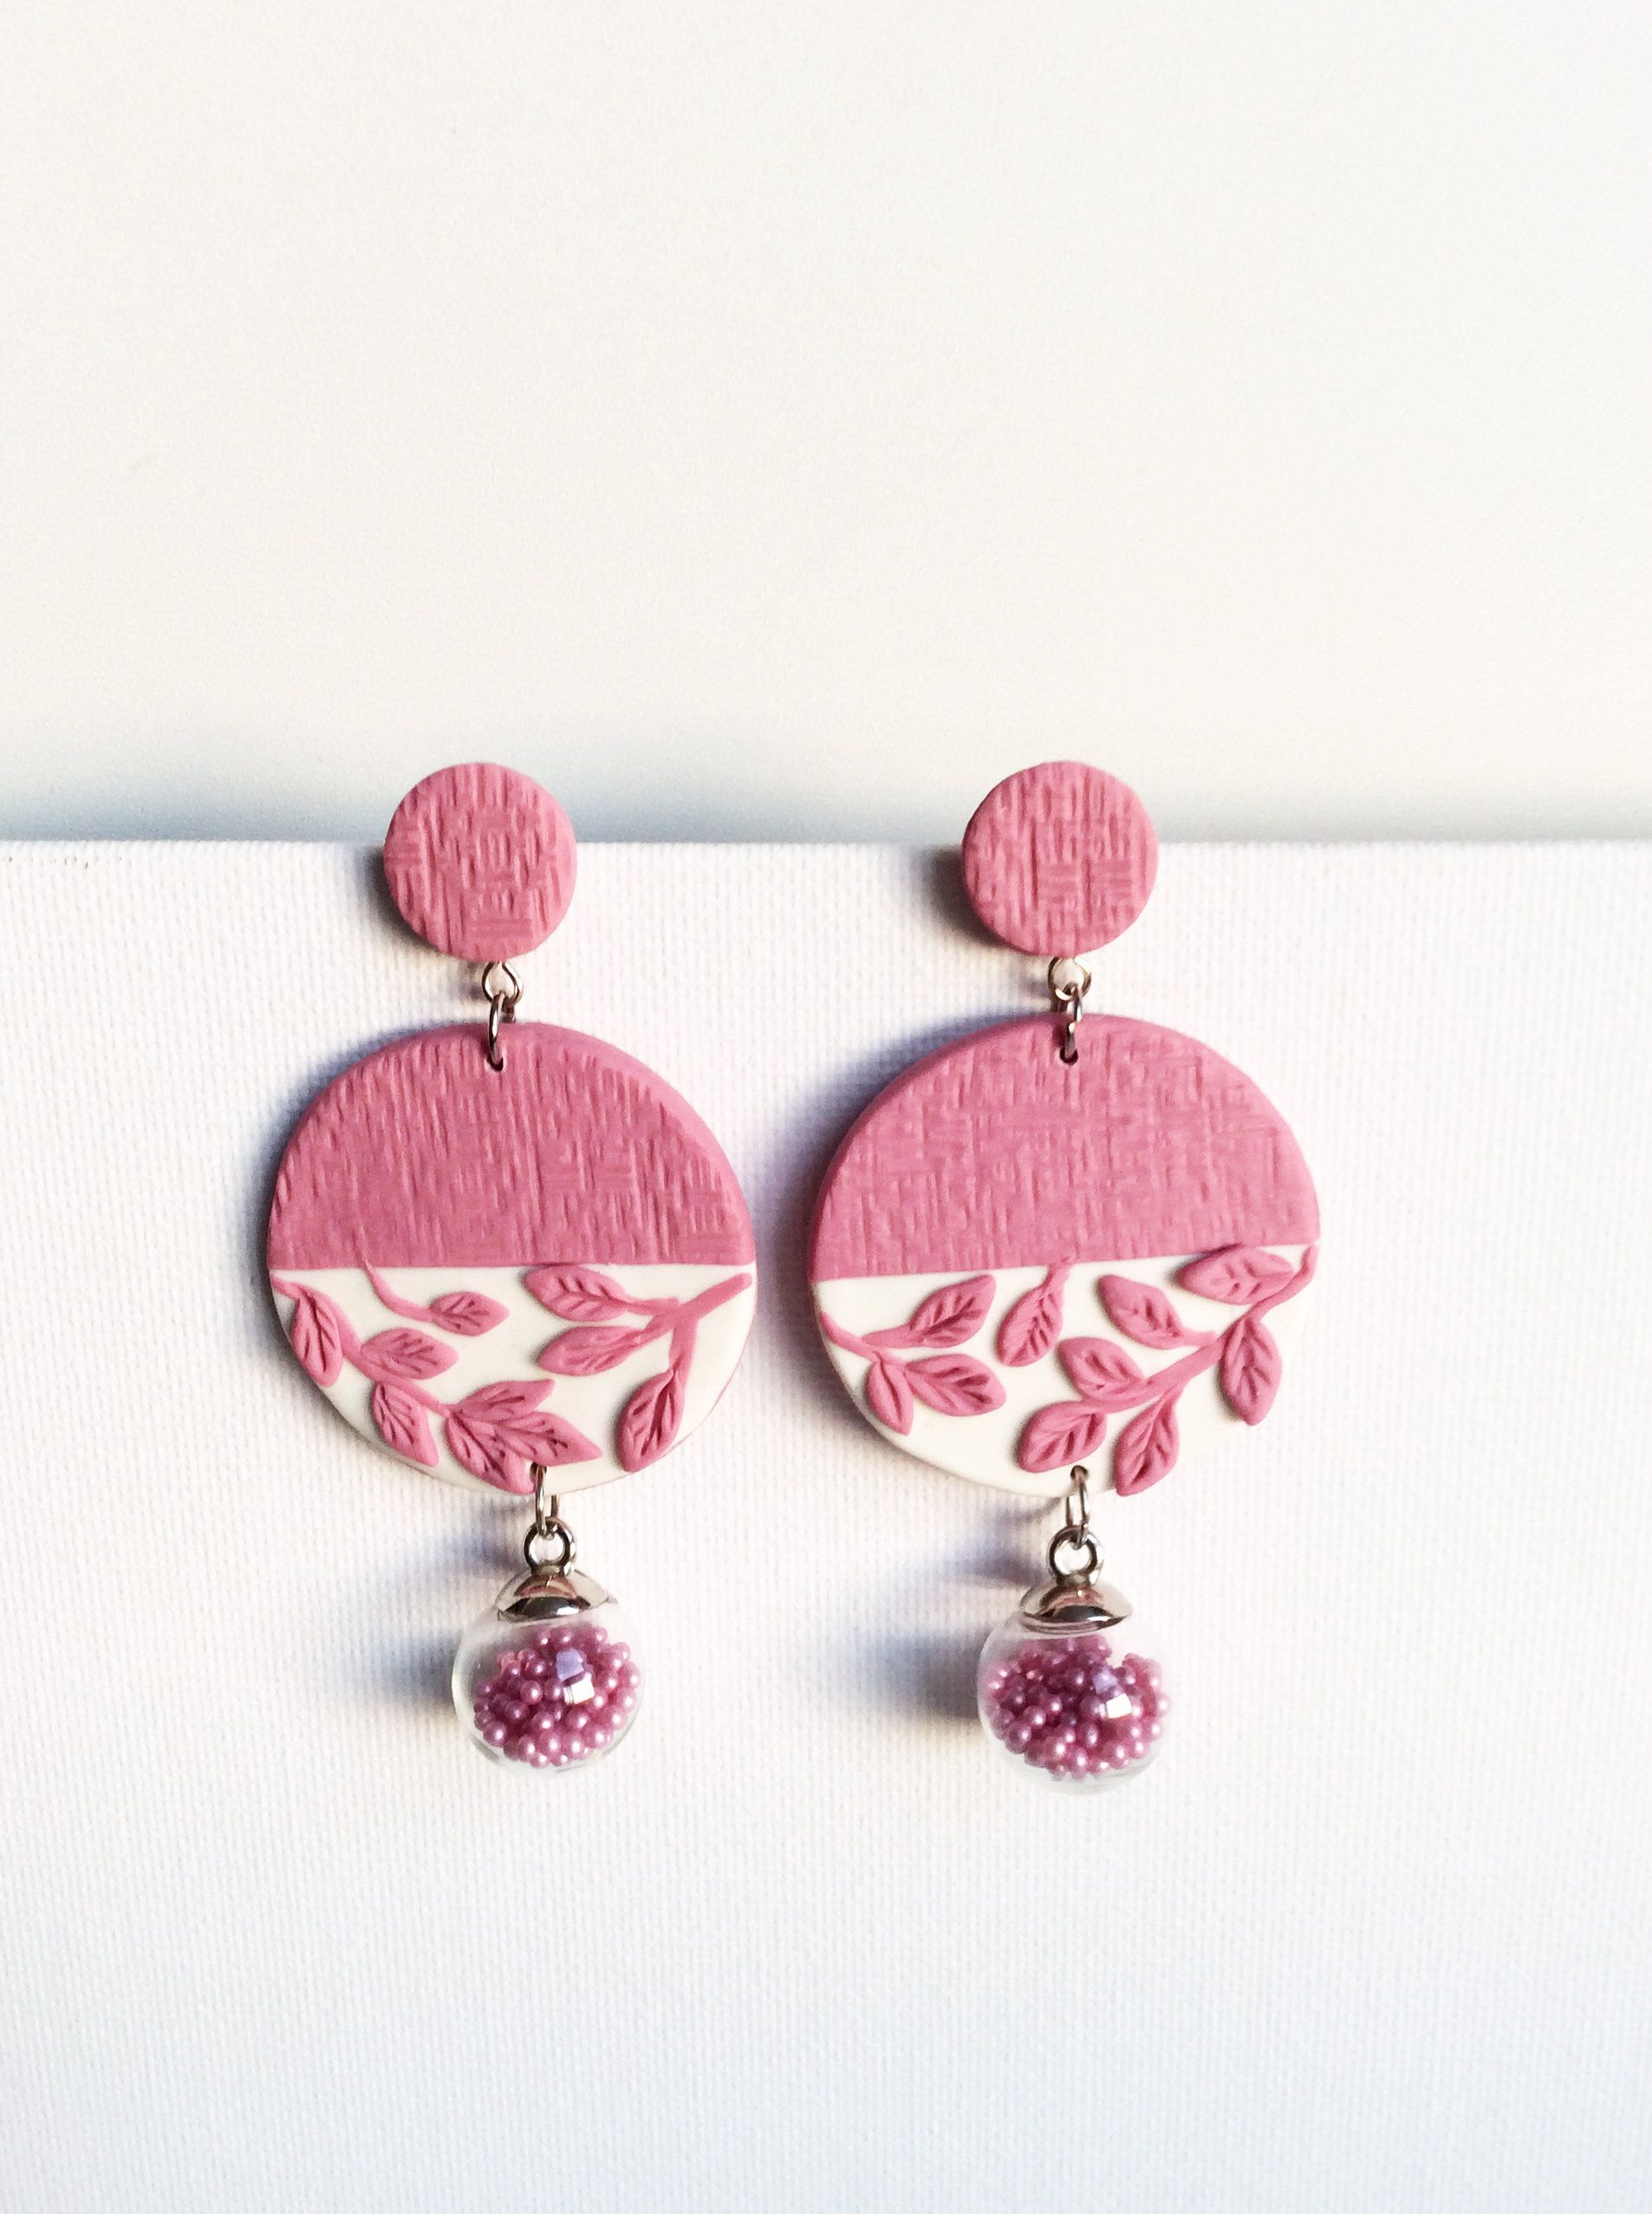 pink and red polymer clay earrings in floral with vase  Abstract earrings  Gifts for her  Statement earrings White